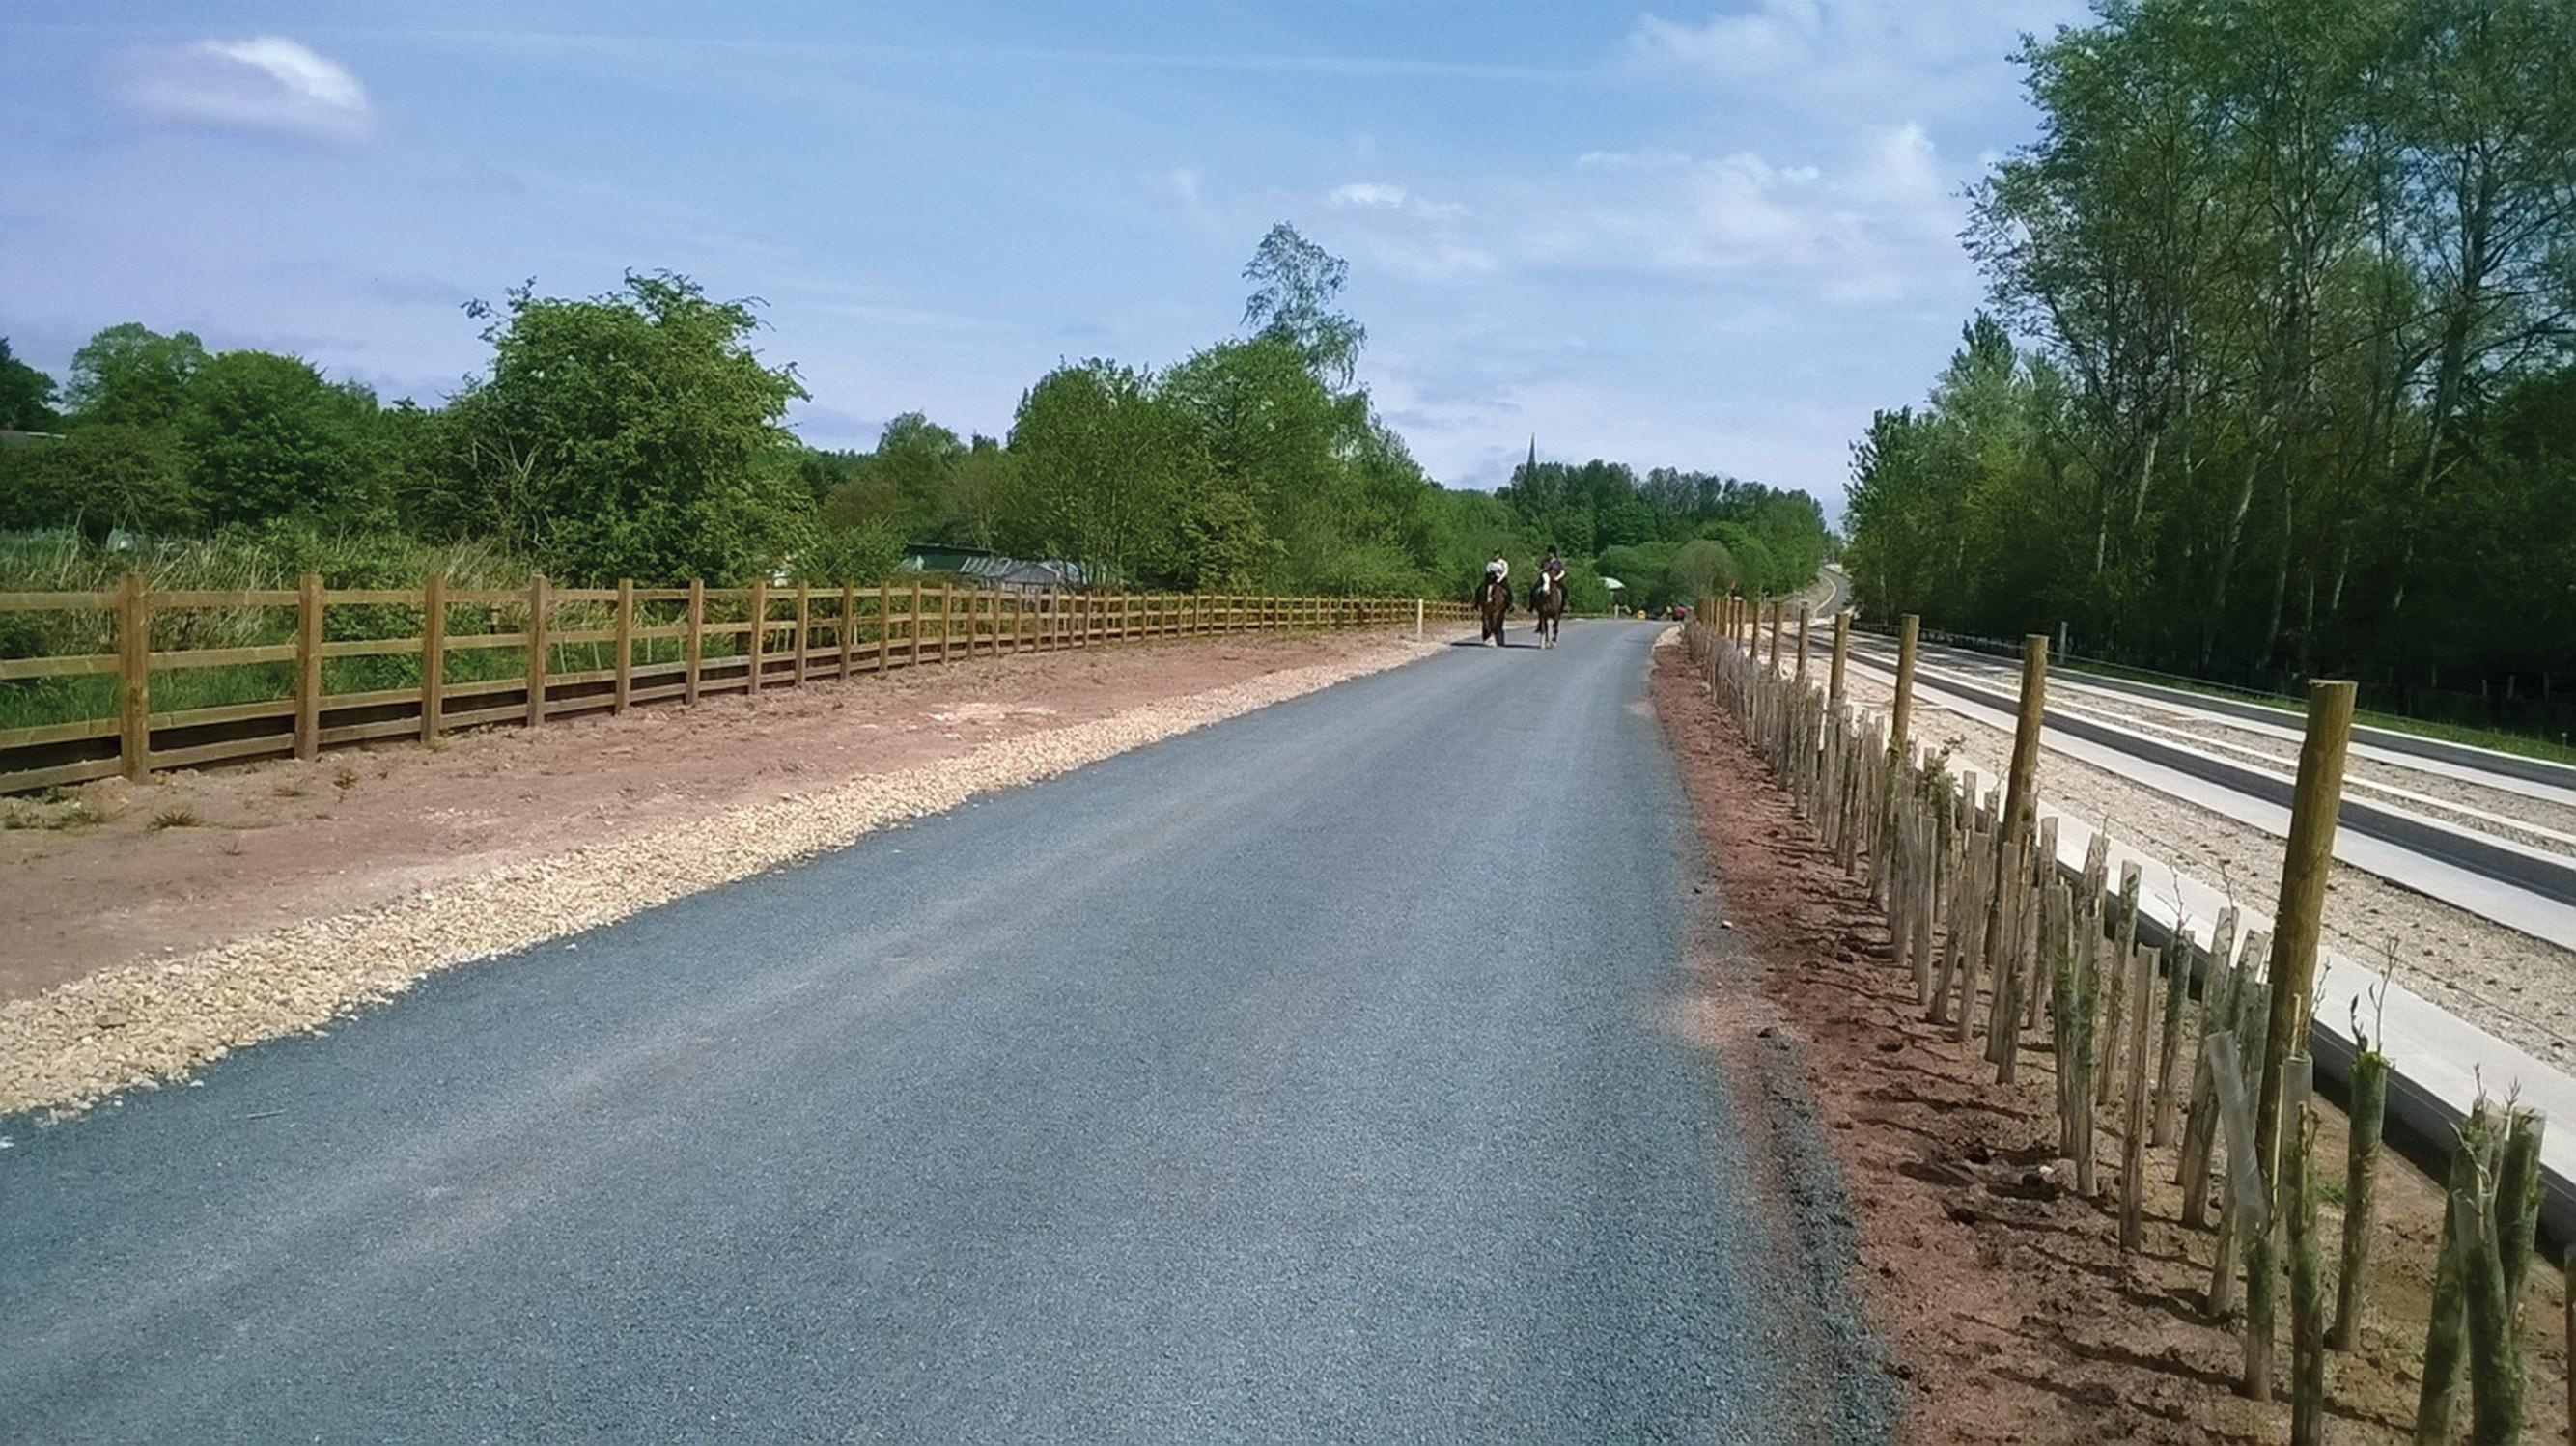 The multi-user path is already proving a hit with walkers, cyclists and horse riders